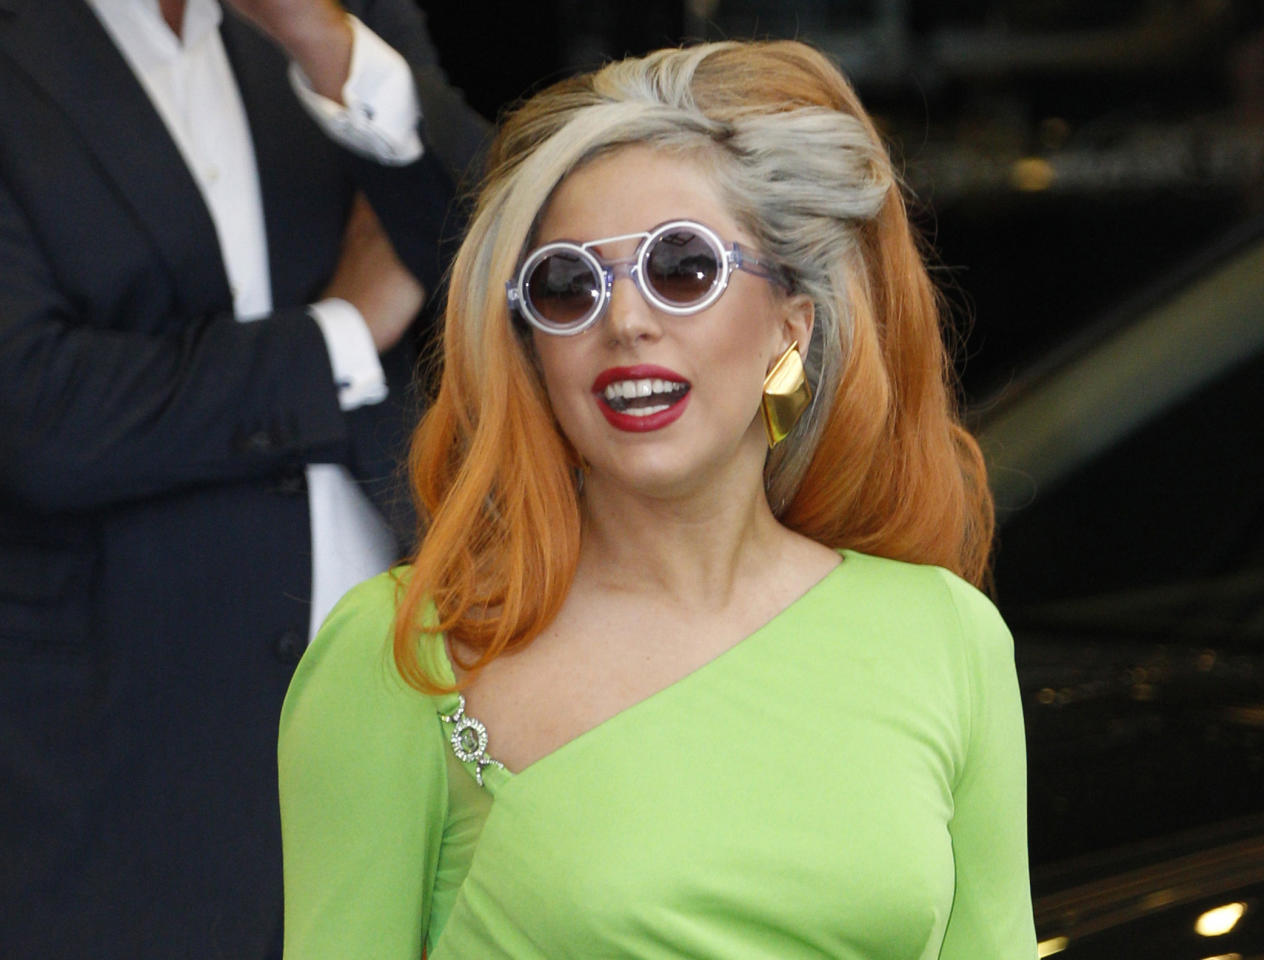 FILE - In this May 16, 2012, file photo, Lady Gaga arrives at the Sungshan airport in Taipei, Taiwan. Lady Gaga has been struck on the head by a pole while performing during the third of three shows in Auckland, Sunday, June 10, 2012. (AP Photo/Wally Santana, File)